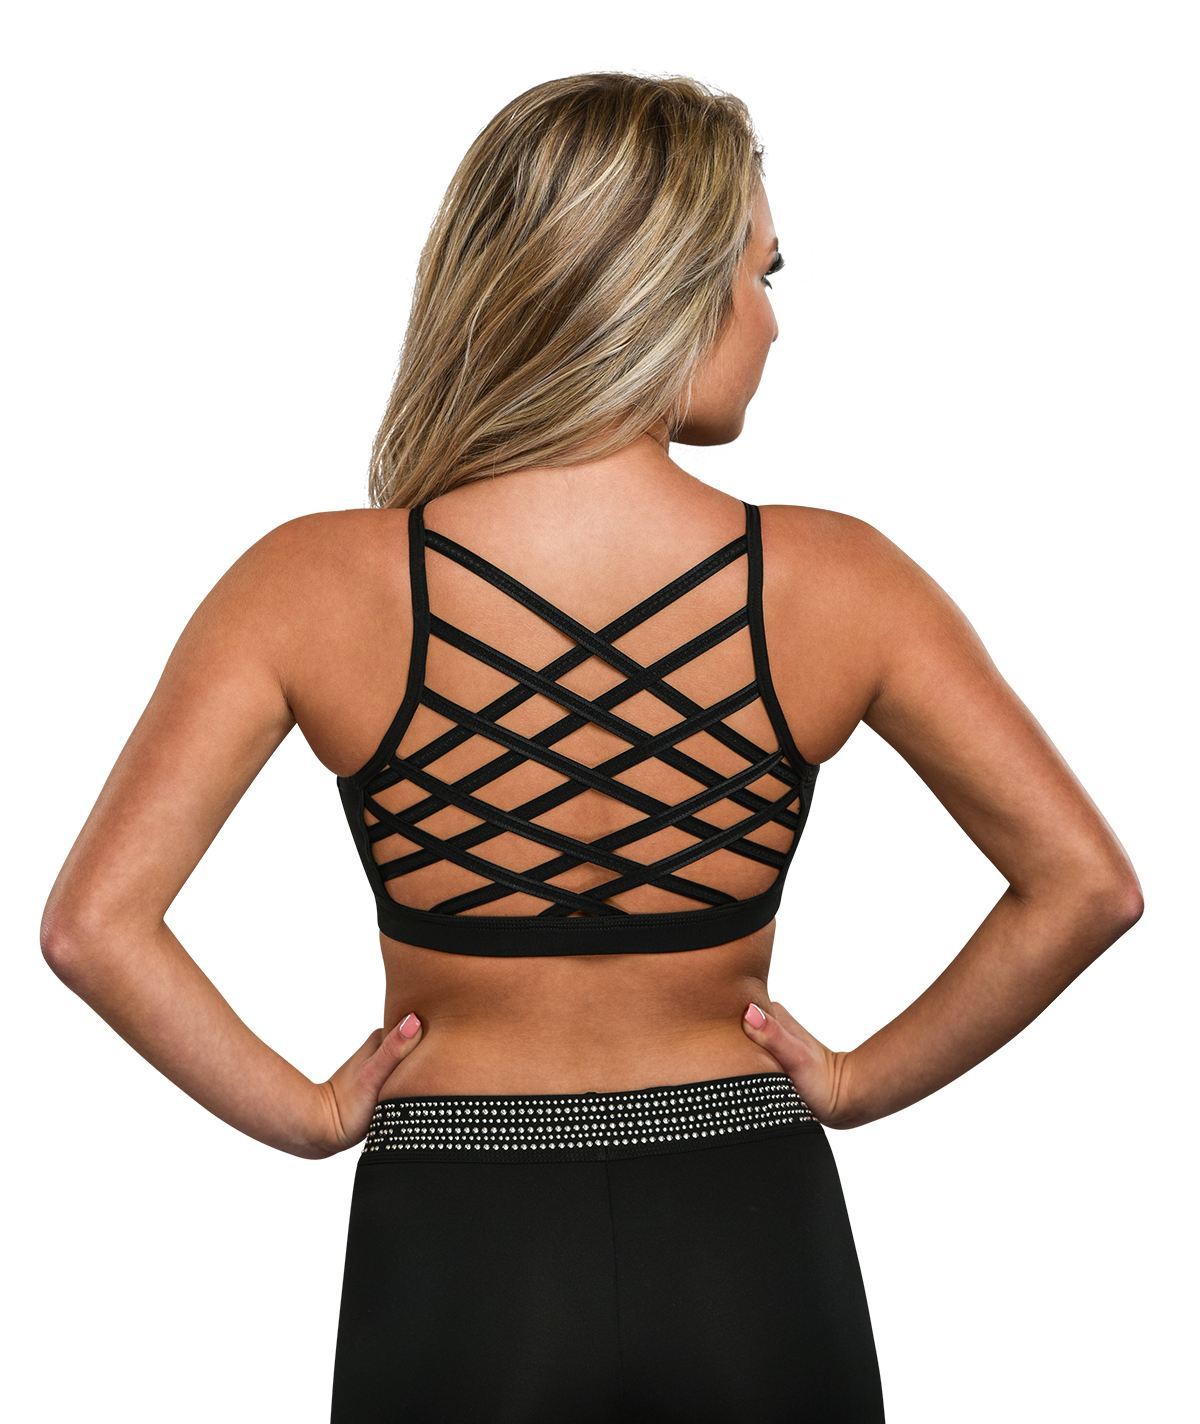 GK All Star Criss Crossed Crop Top